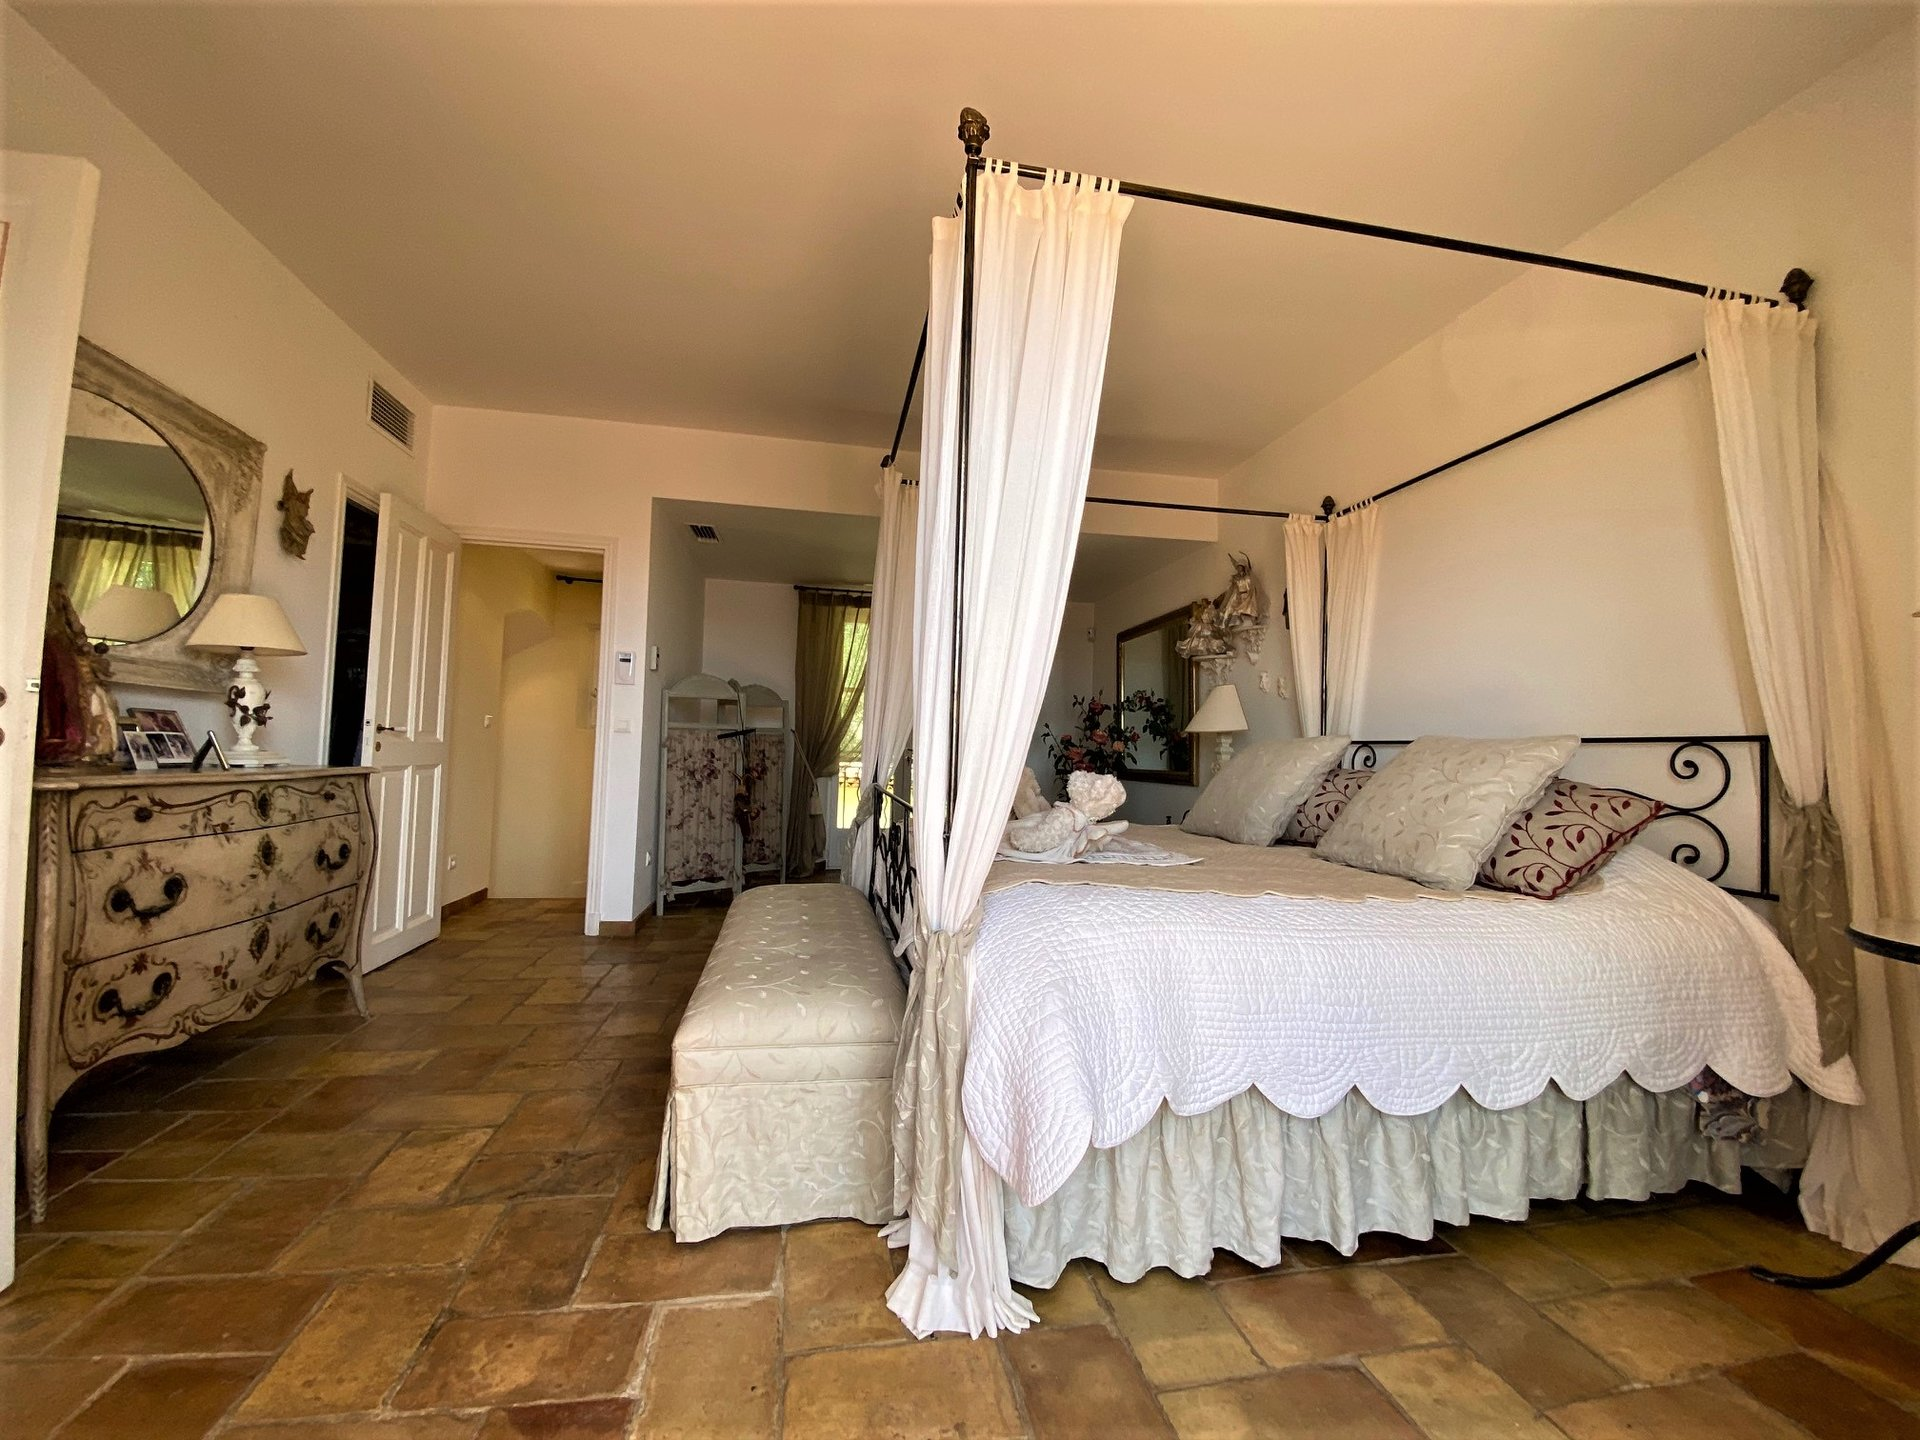 For sale beautiful provensal house with magnificent sea view in Grimaud, Beauvallon Bartolle. This property ...